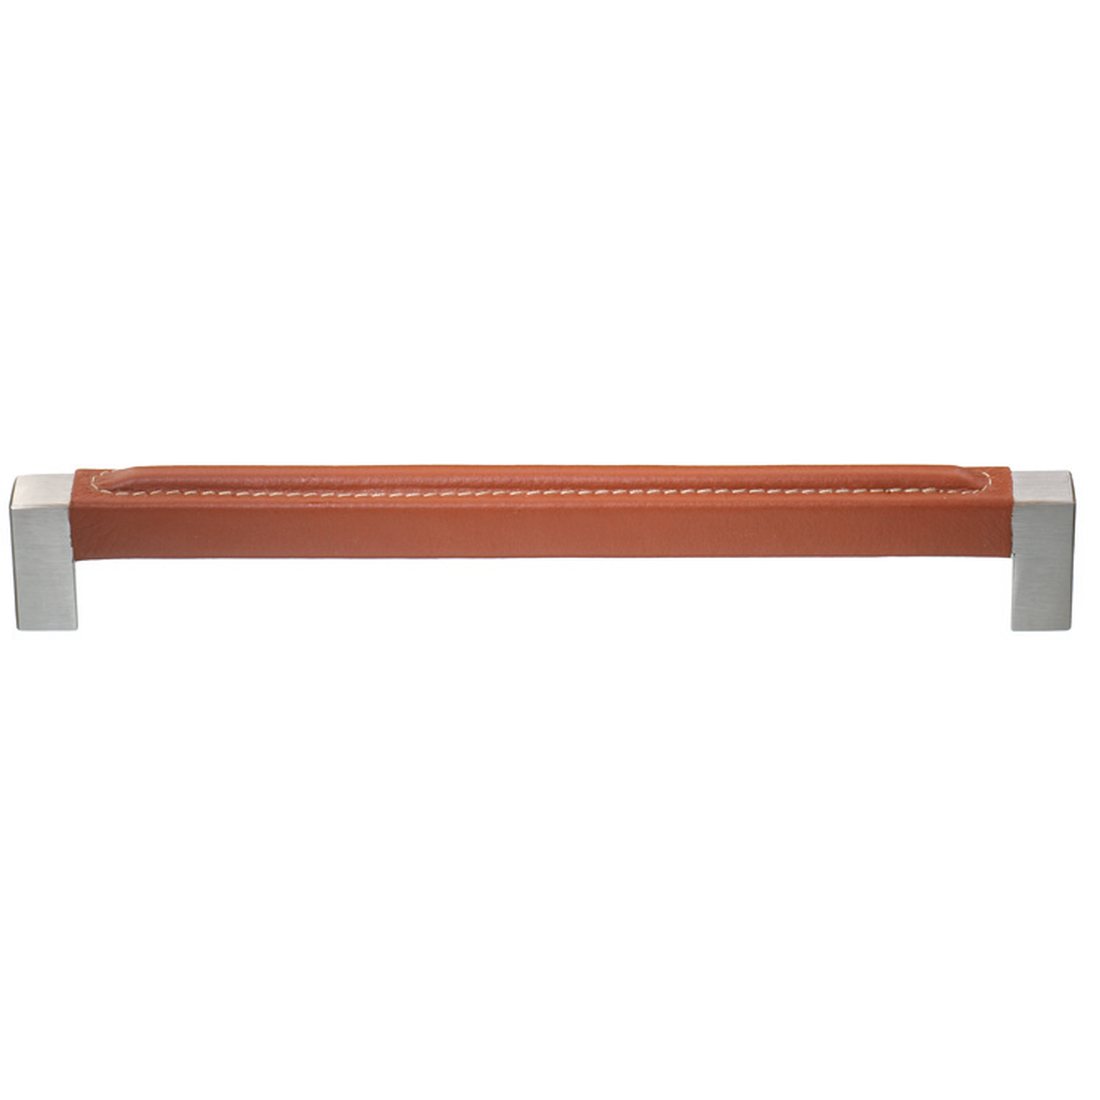 CALUS HANDLE 12X12MM, WITH STITCHED LEATHER